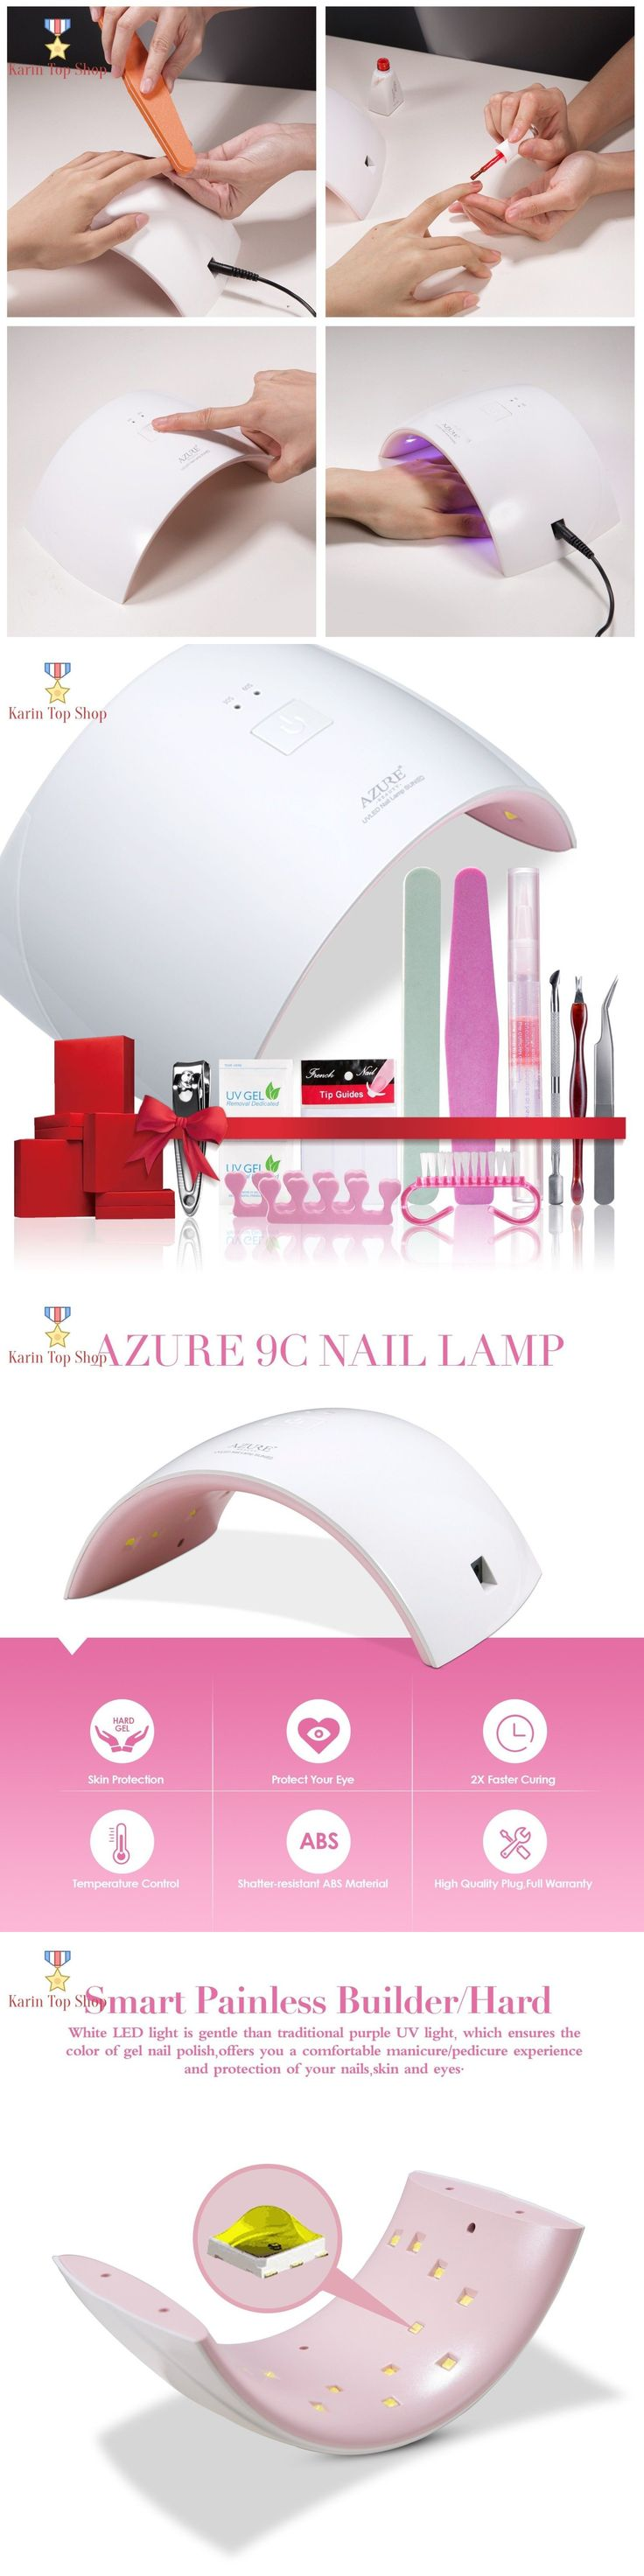 Nail Dryers and UV LED Lamps: Professional Starter Kit Nail Dryer Lamp Machine Gel Polish 24W Led Uv Nail Tool -> BUY IT NOW ONLY: $35.95 on eBay!